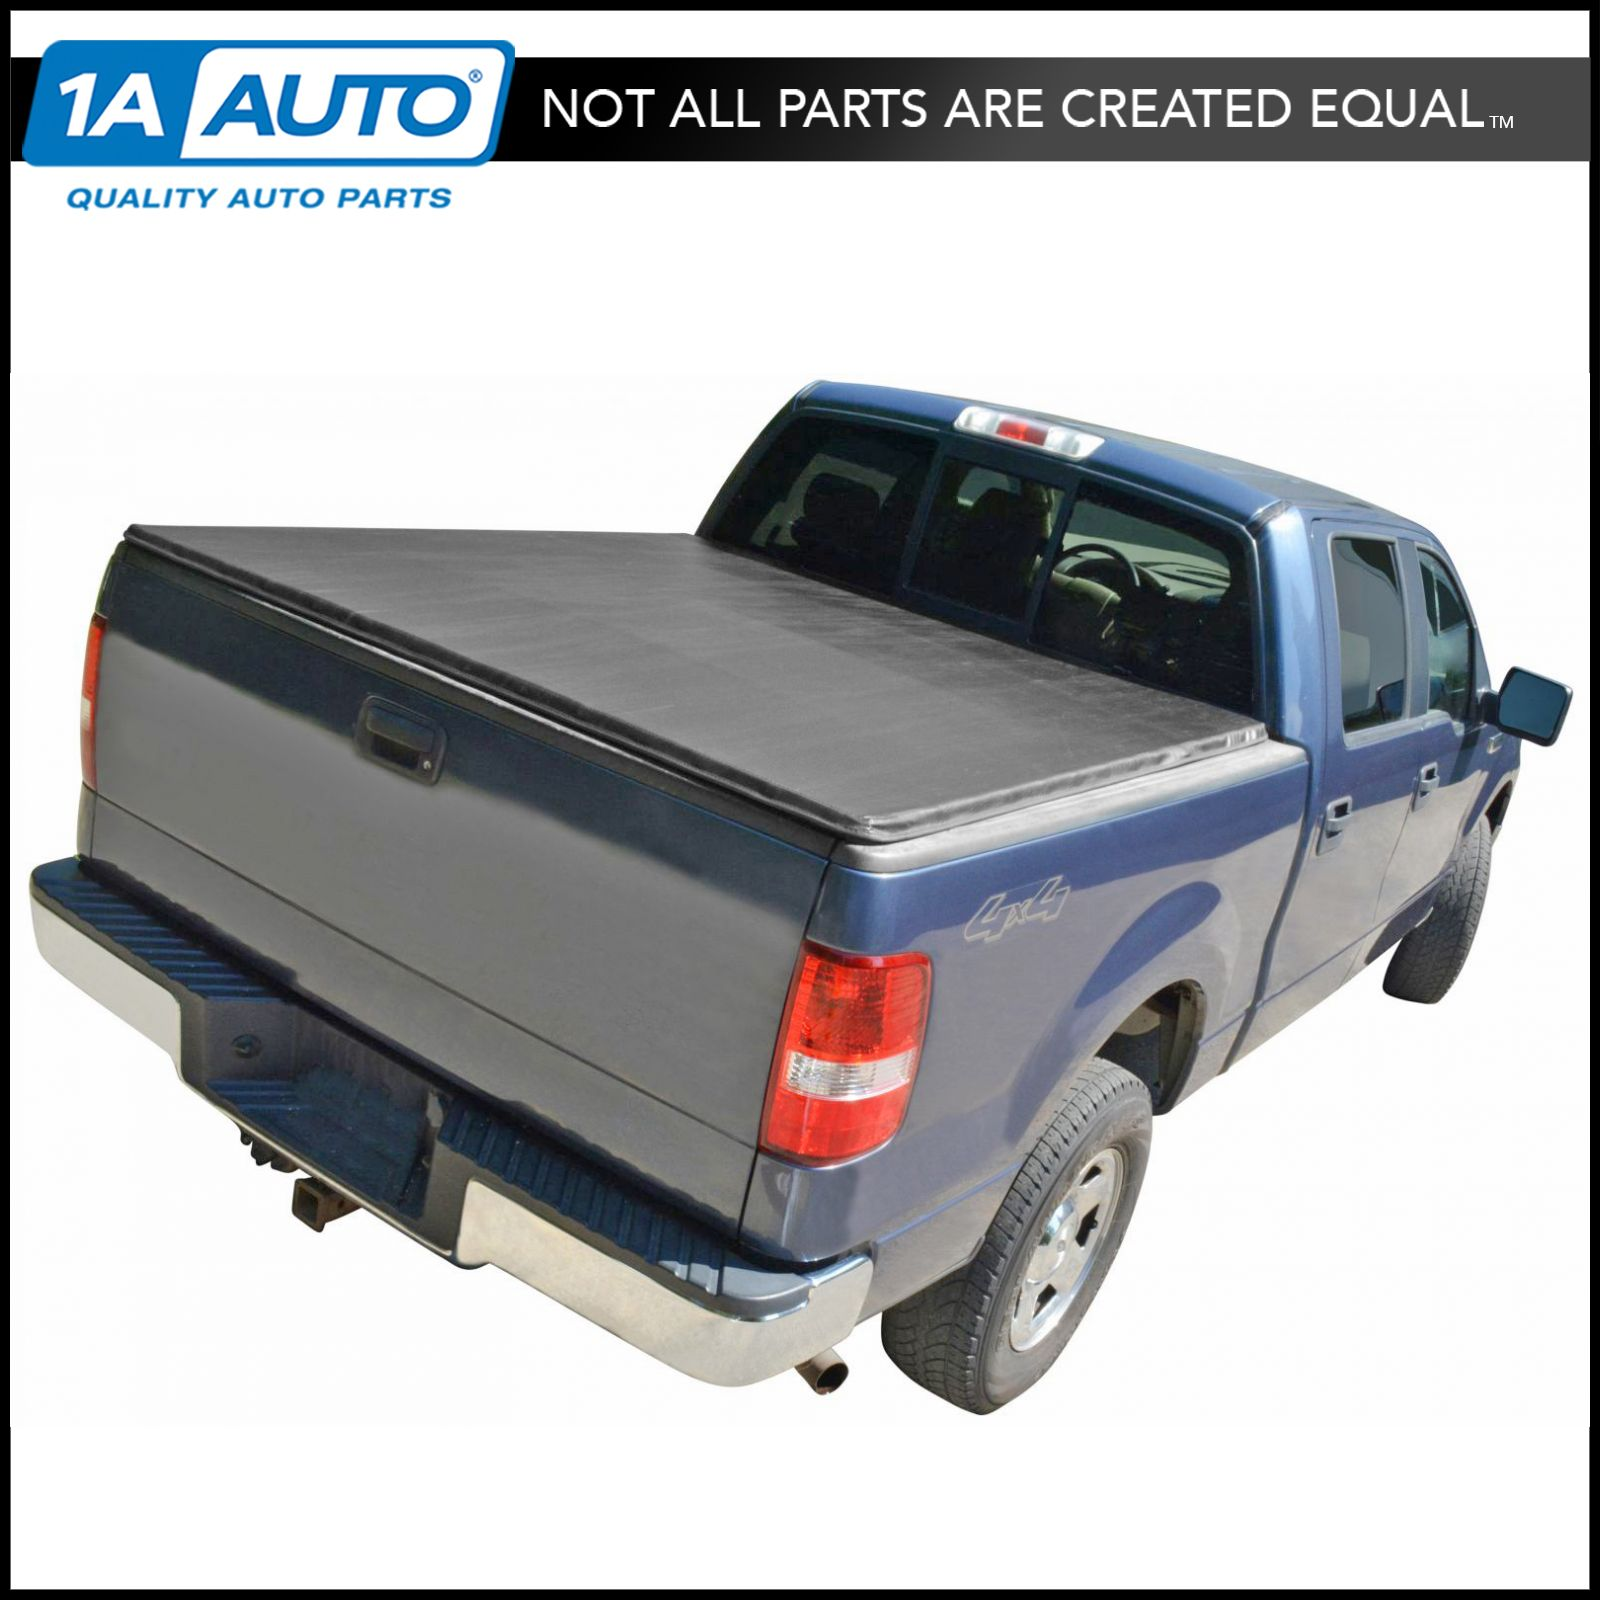 Tonneau Cover Hidden Snap For Tundra Access Cab Pickup Truck 6 2ft Short Bed Ebay